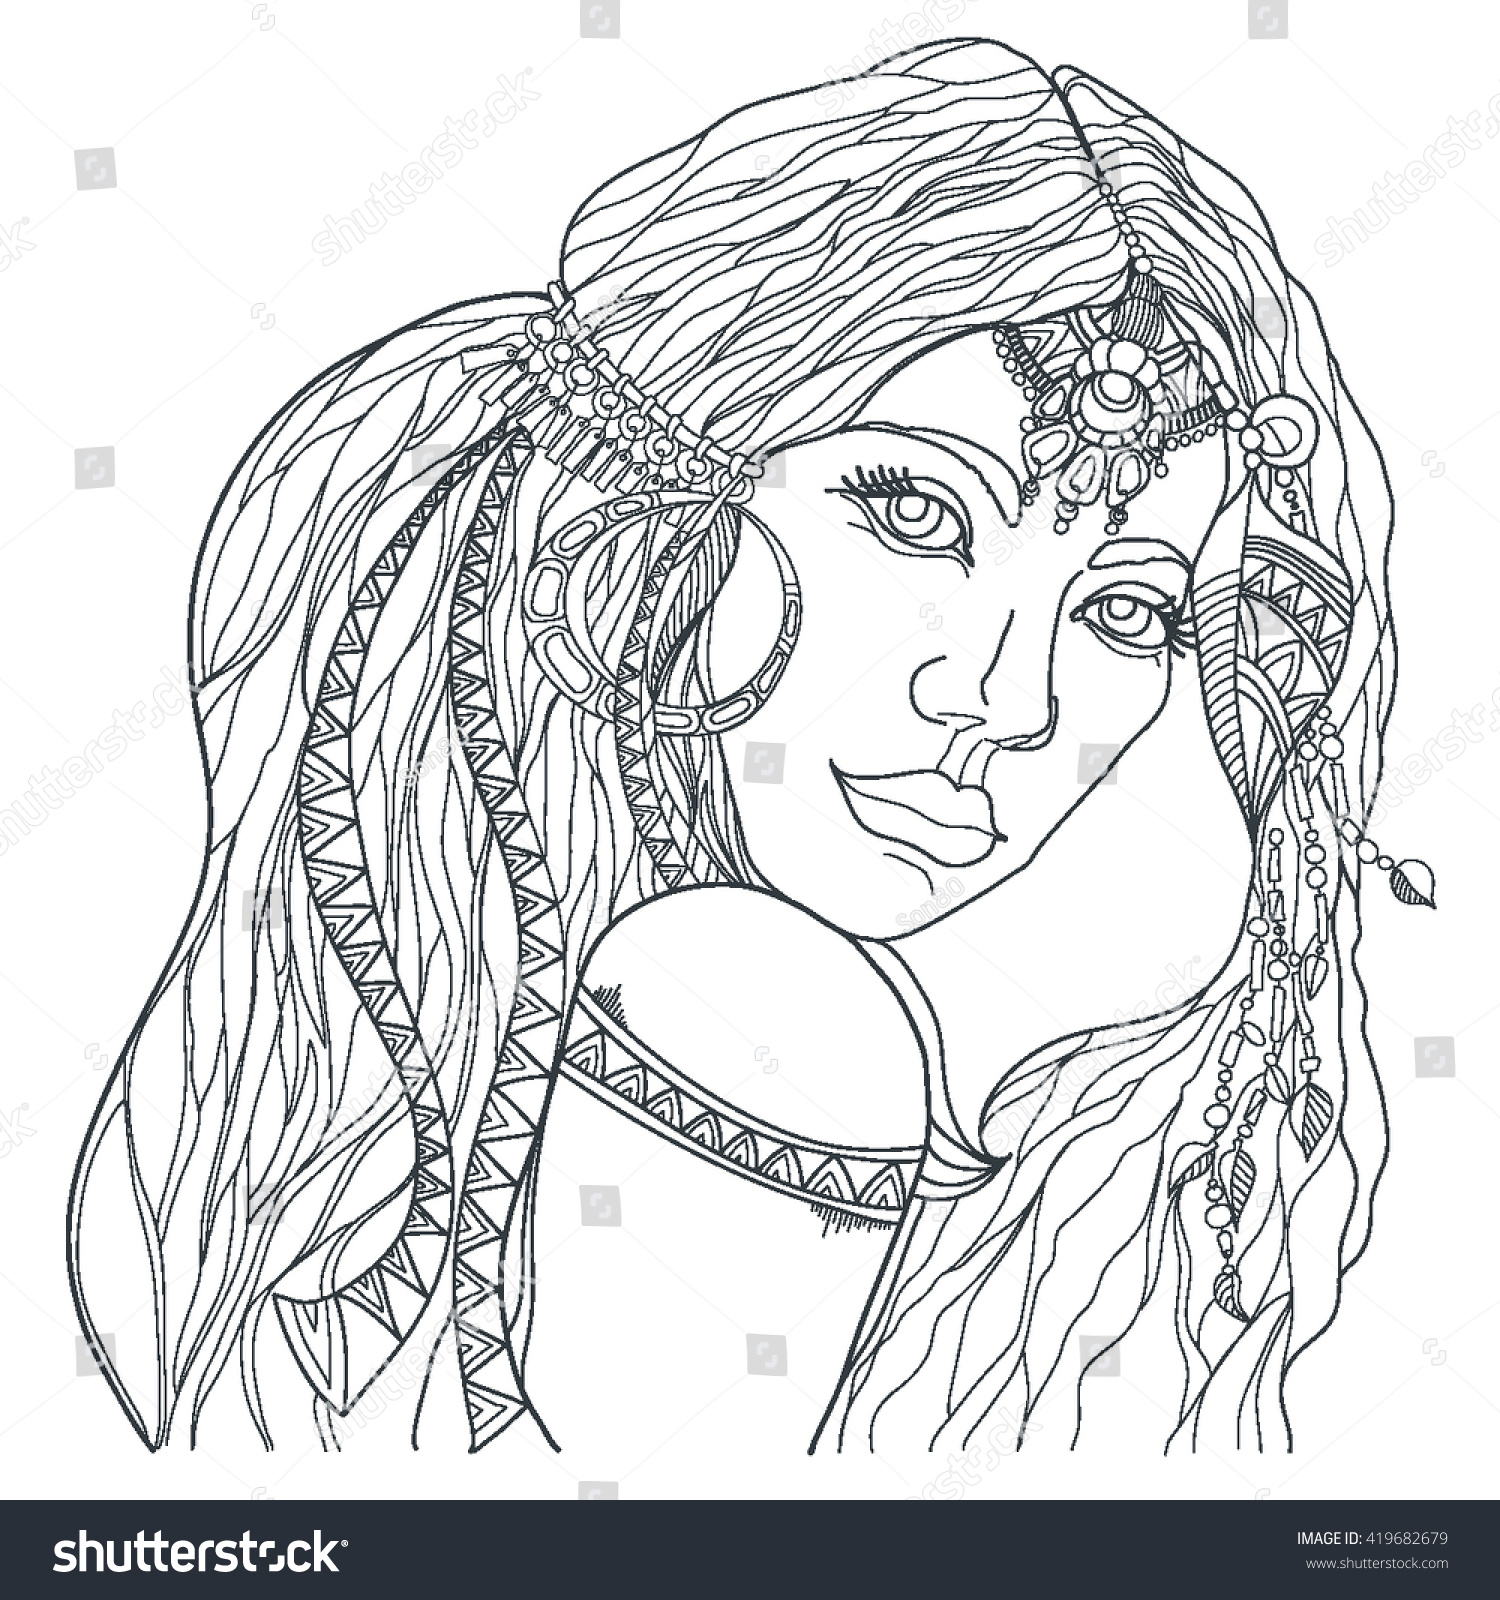 boho style fashion coloring page stock vector 419682679